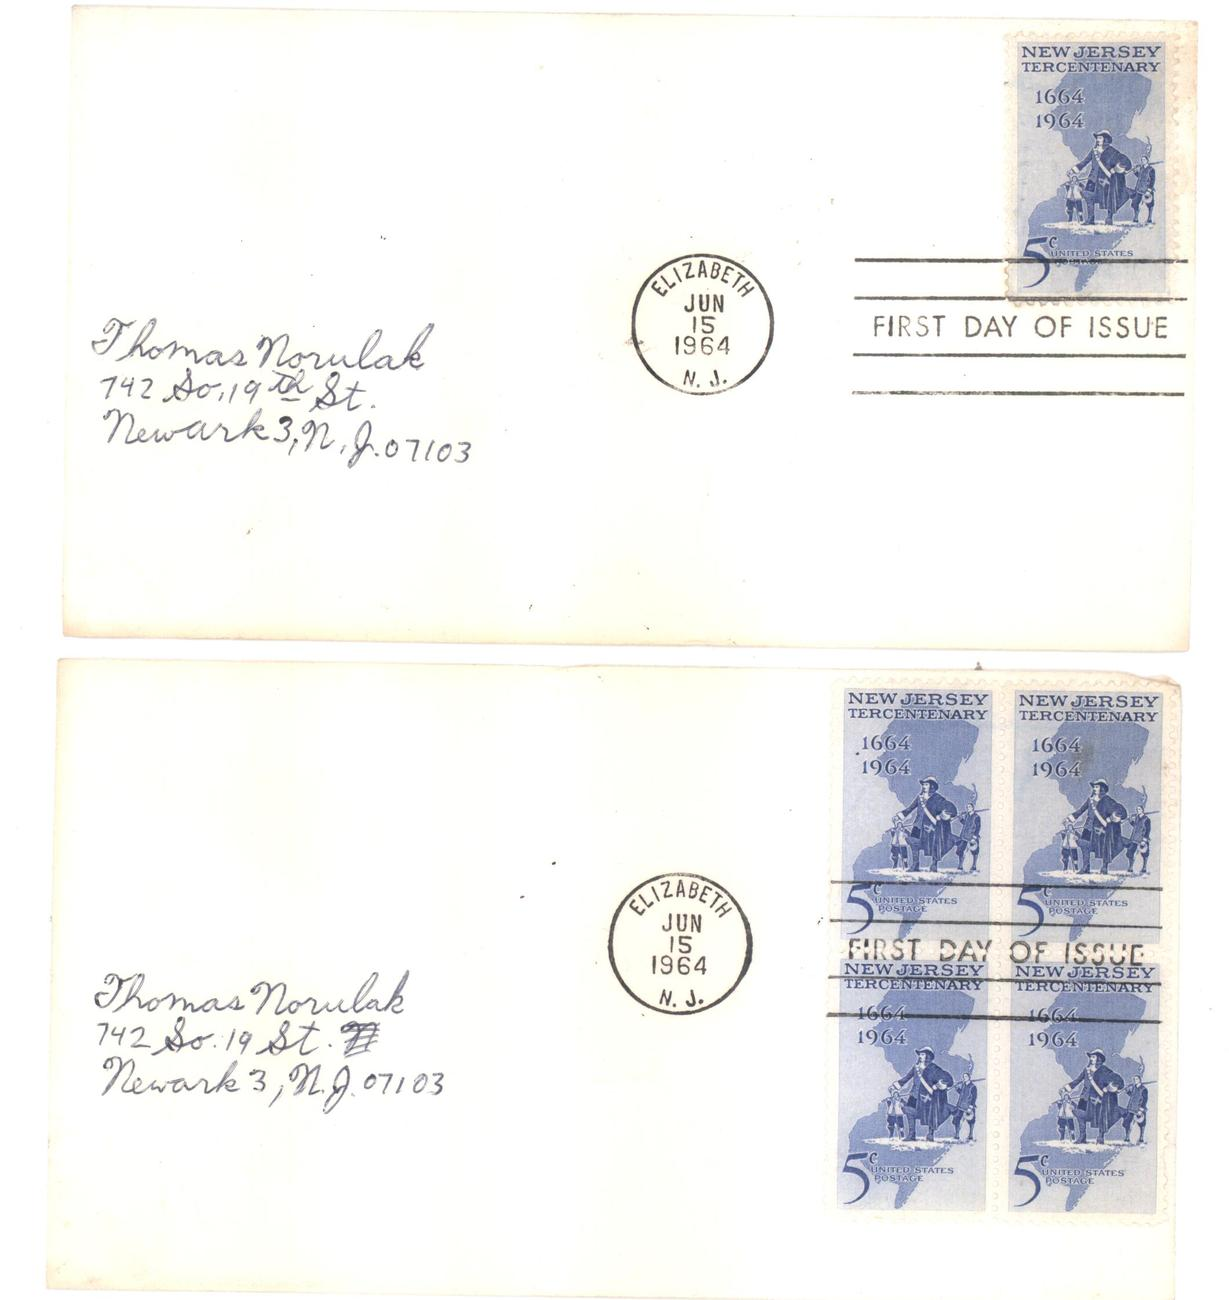 New Jersey Tercentenary First Day Covers Jun 15, 1964 single & block of 4